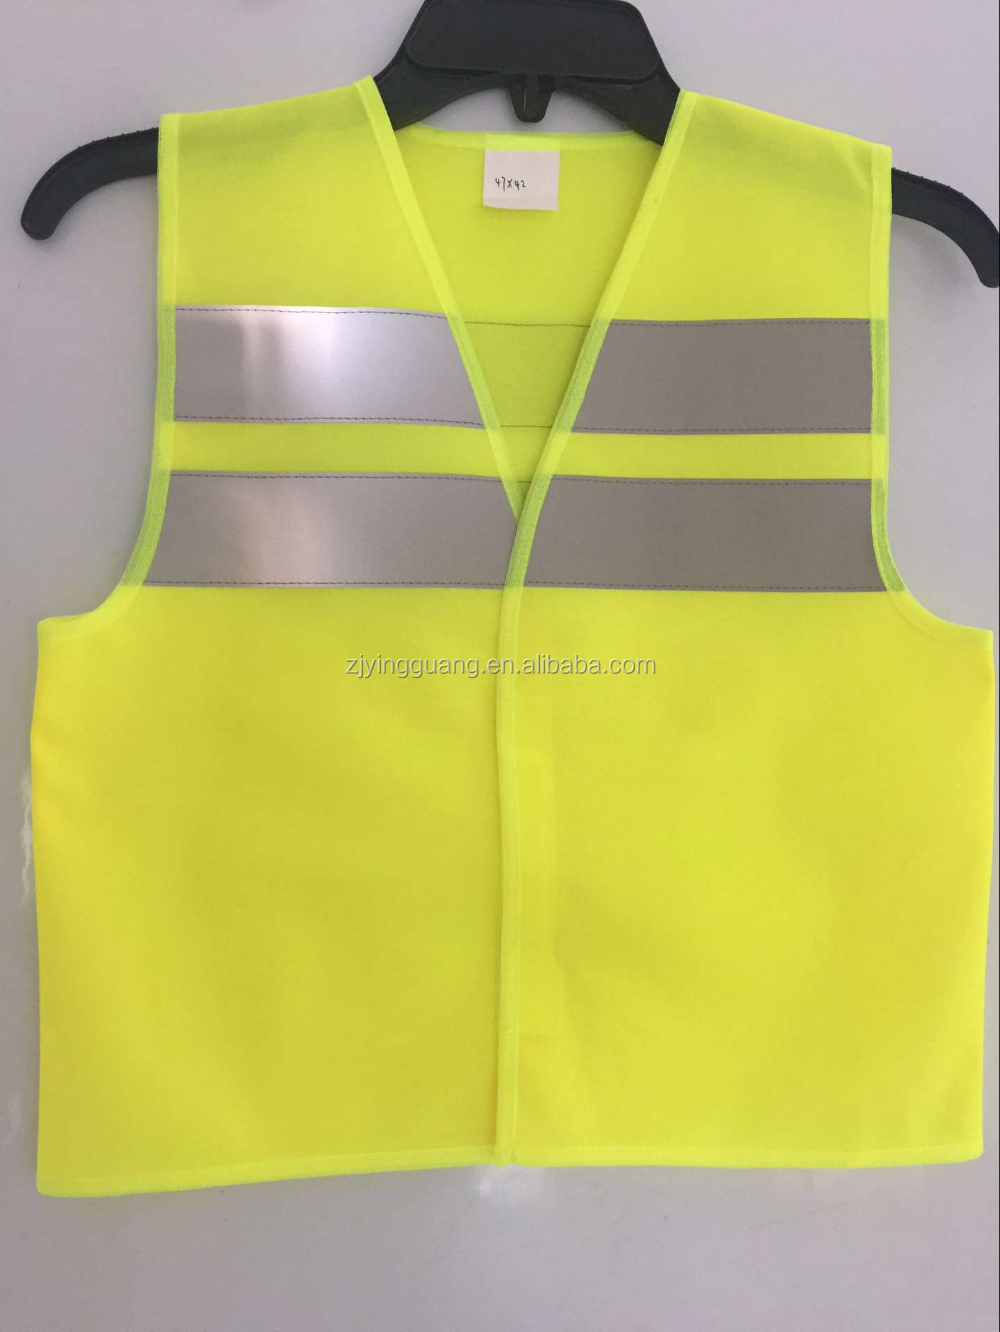 EN471 Safety Vest with Hi-Vis Reflective Tape and Velcor